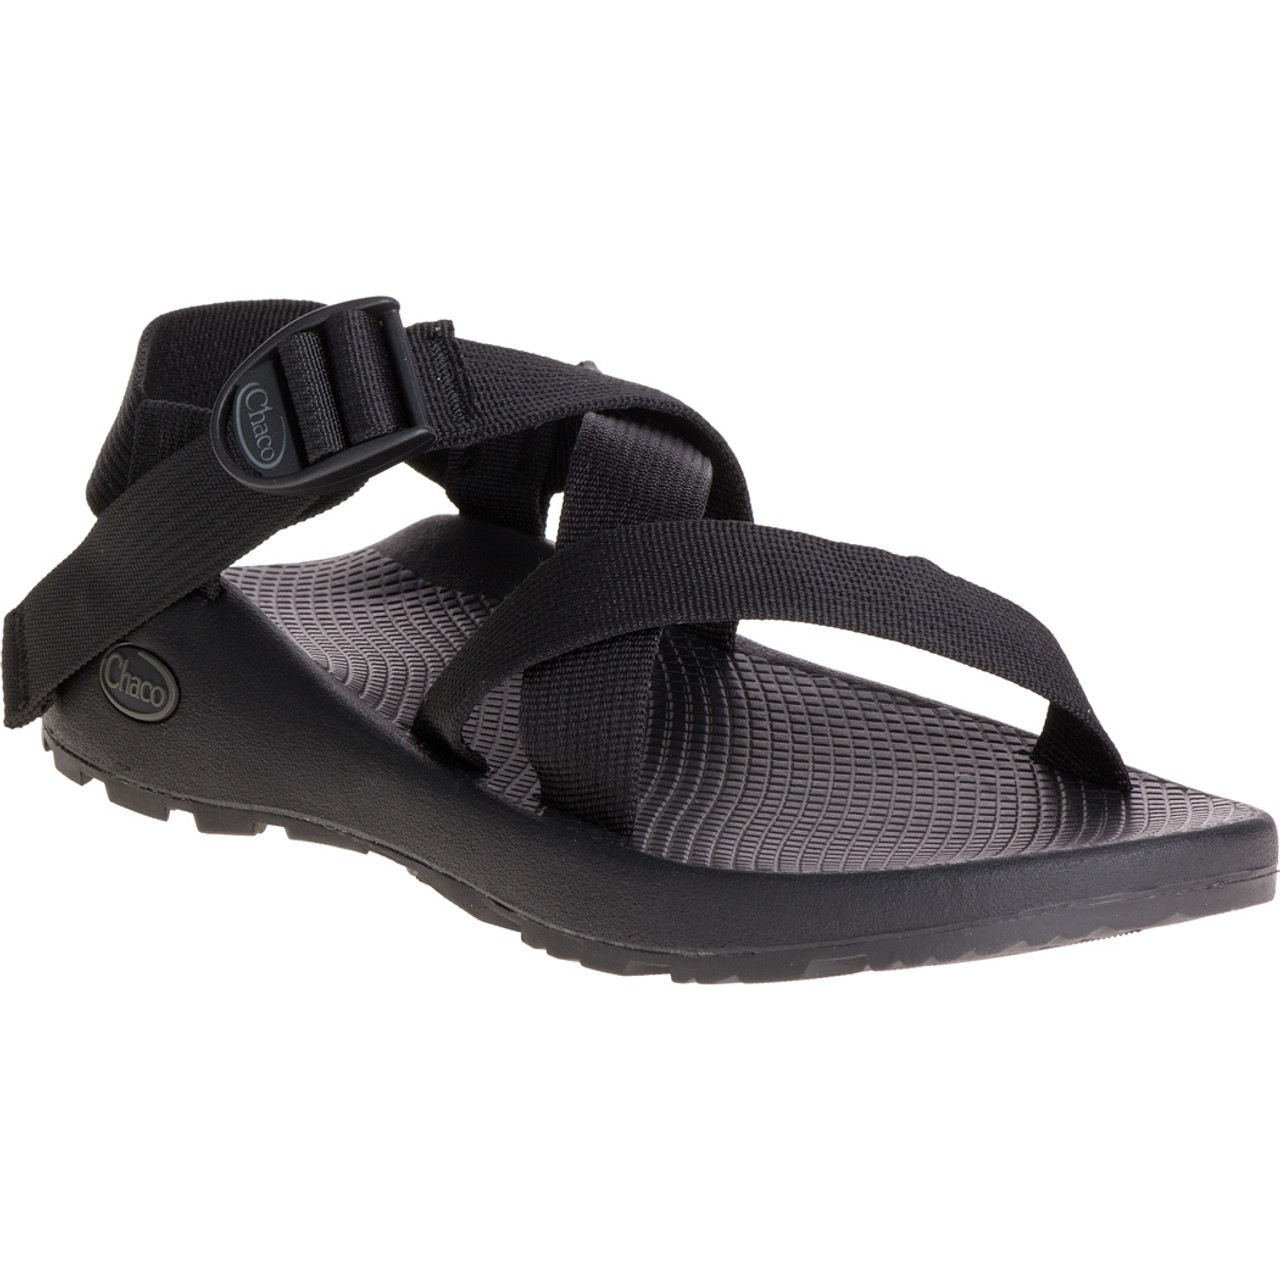 256c6f652fcf Chacos Sandals - Z 1 Classic - Black - Surf and Dirt